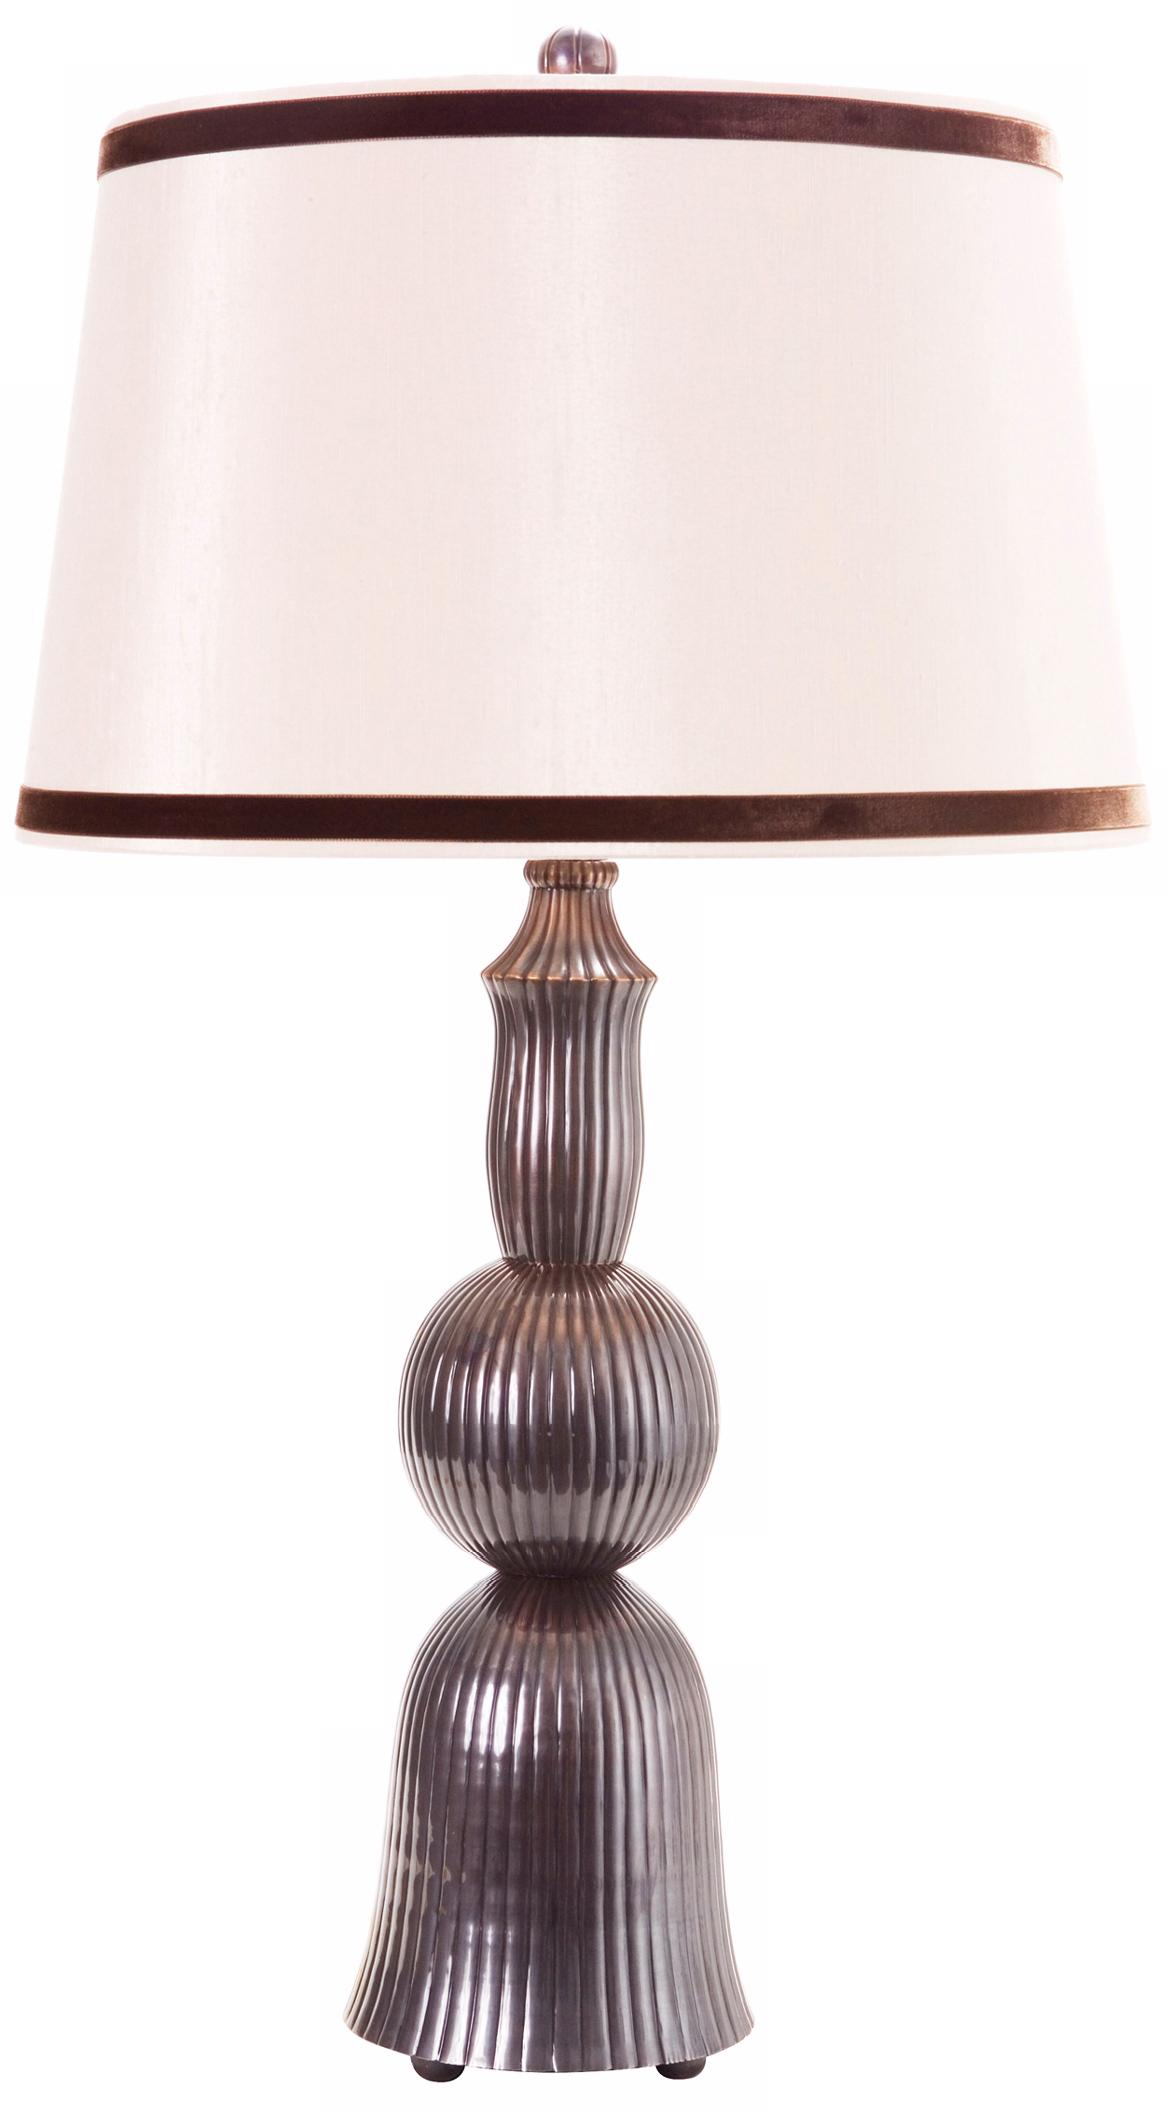 Frederick Cooper Mullholland Drive II Table Lamp (N9852)